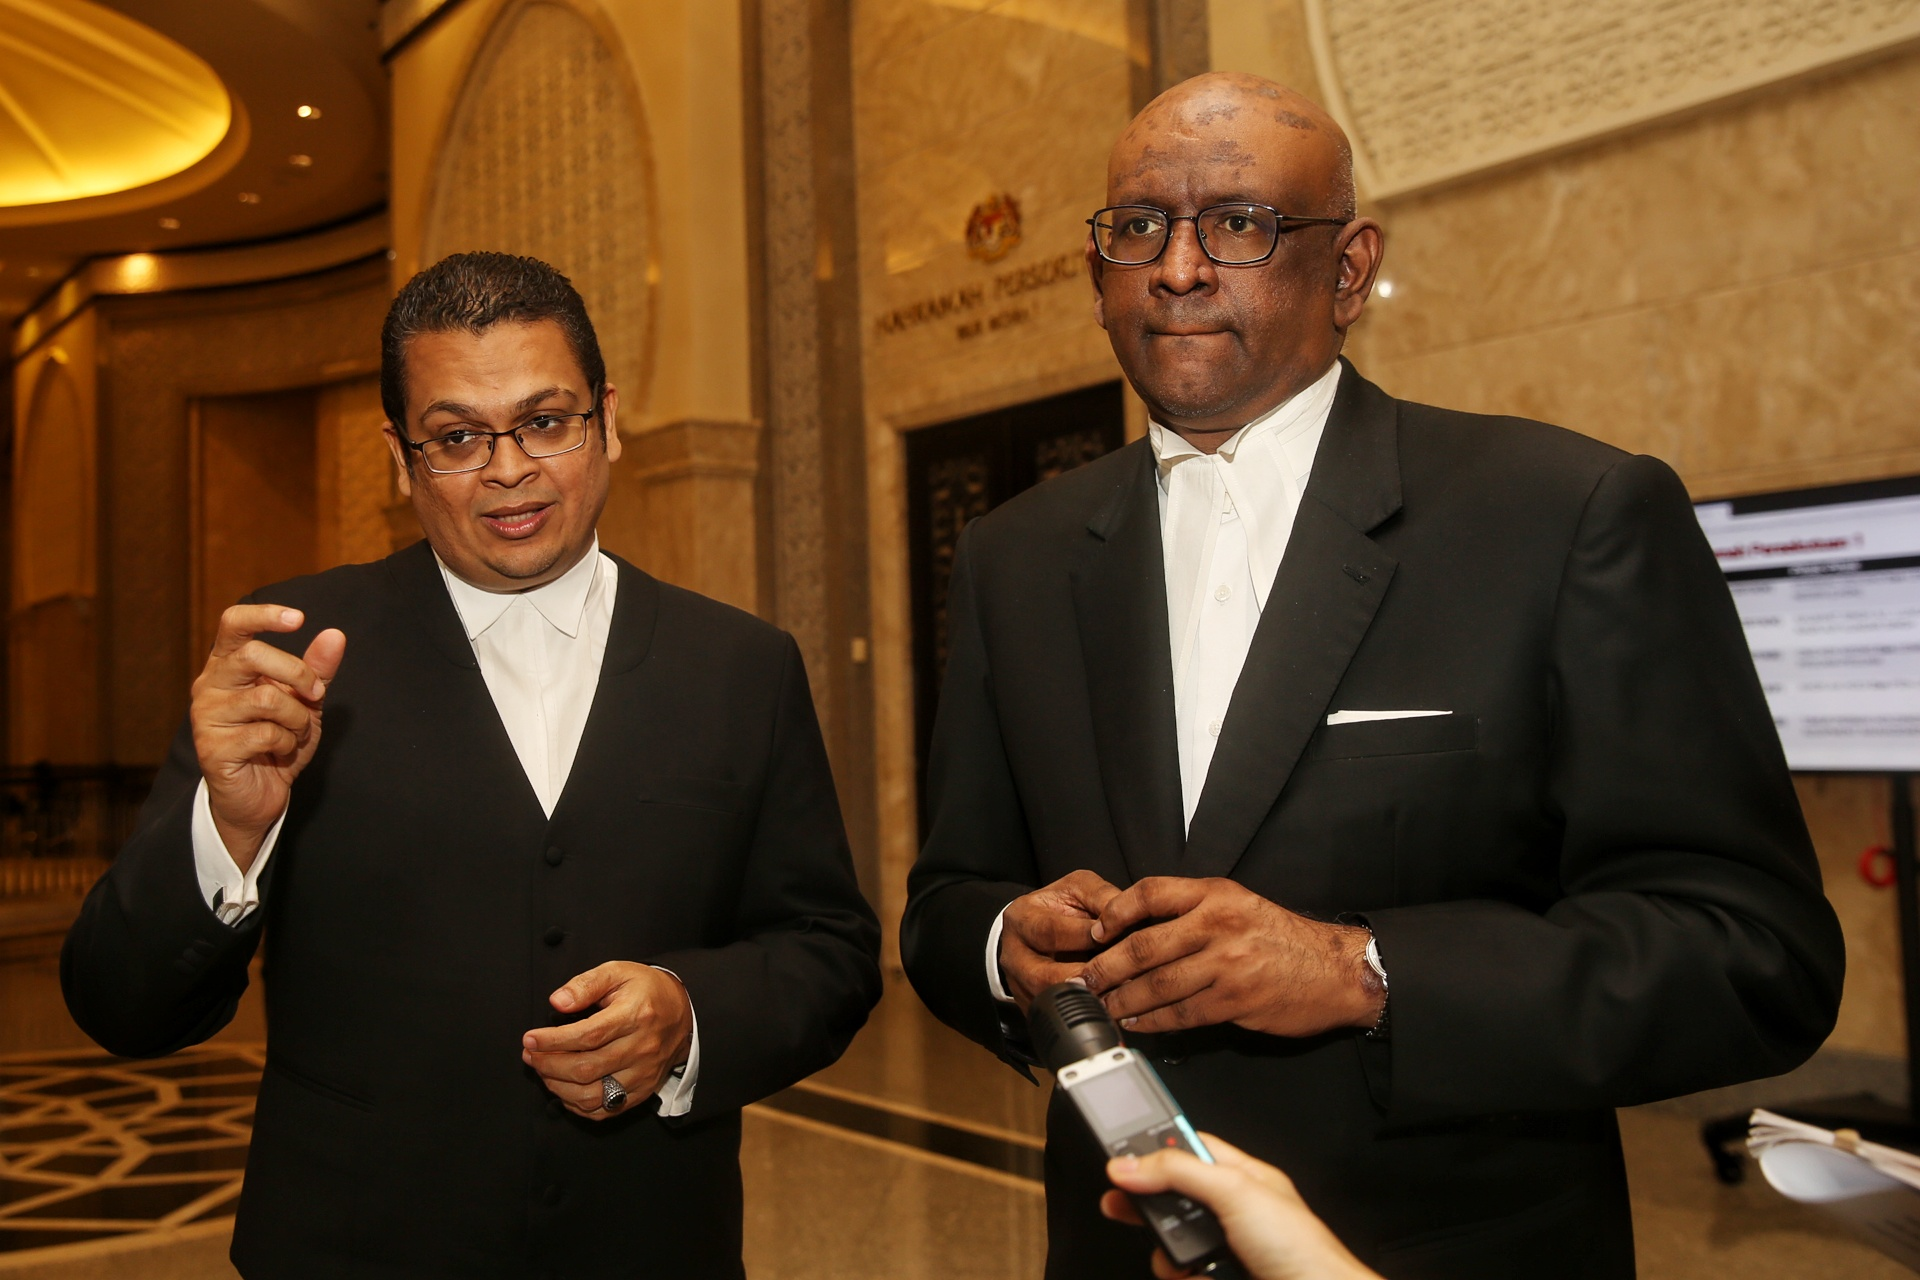 Lawyers Nizam Bashir (left) and K. Shanmuga speak to reporters at the Federal Court in Putrajaya February 13, 2020. ― Picture by Choo Choy May